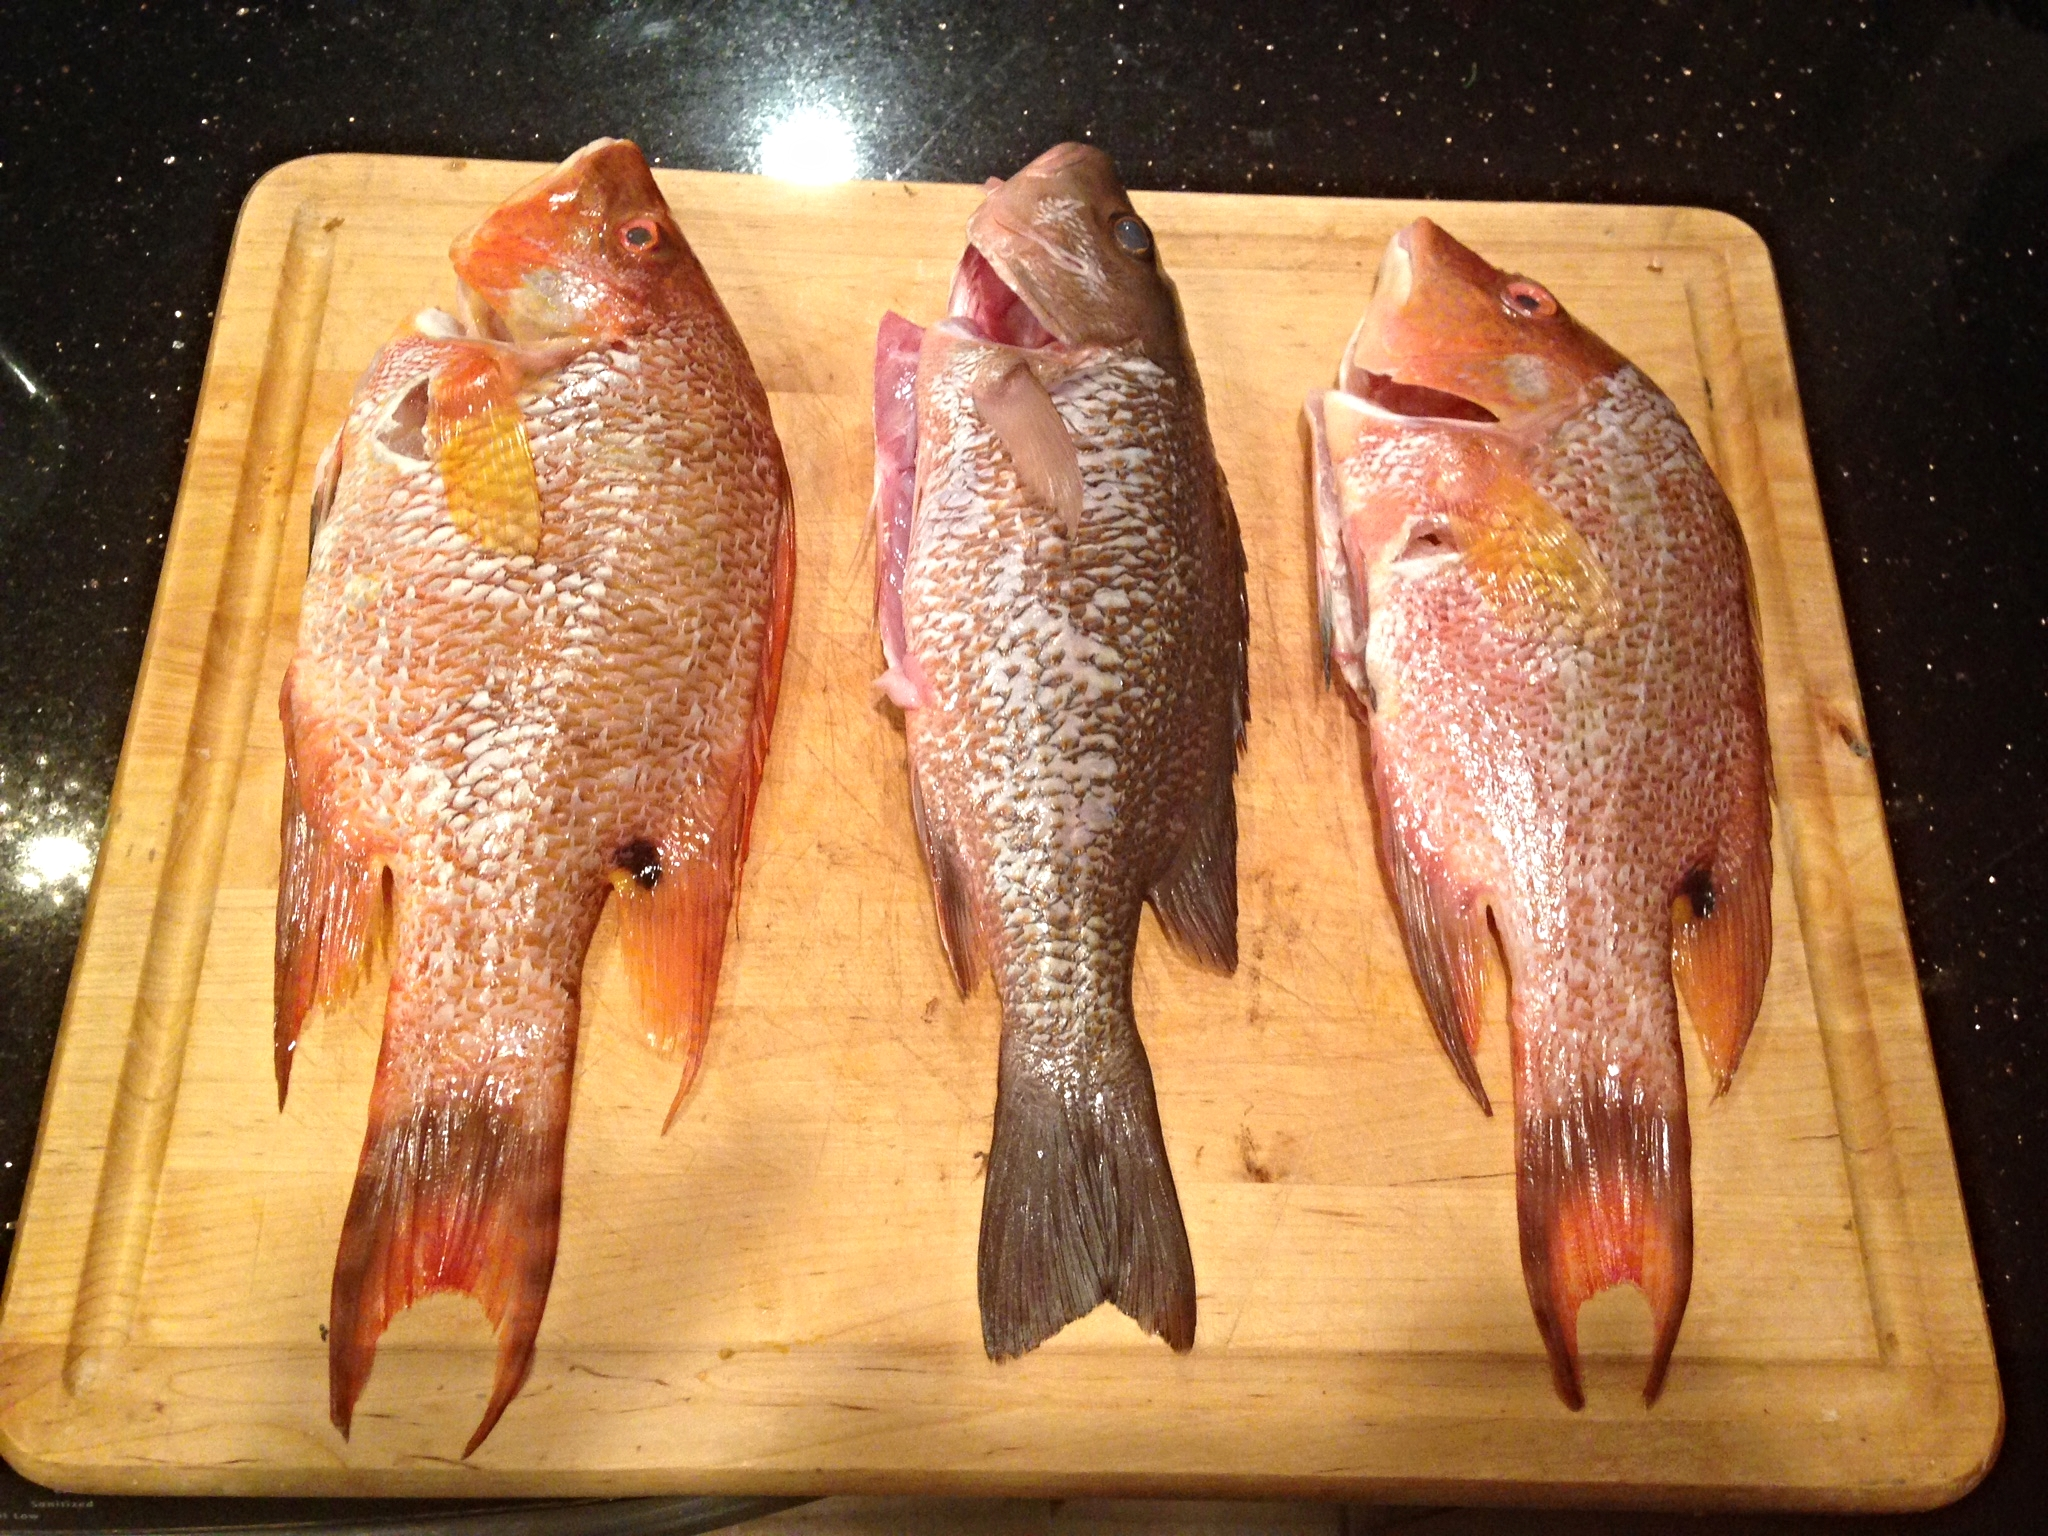 Average sized Mangrove Snapper or Hogfish perfect for preparing whole.